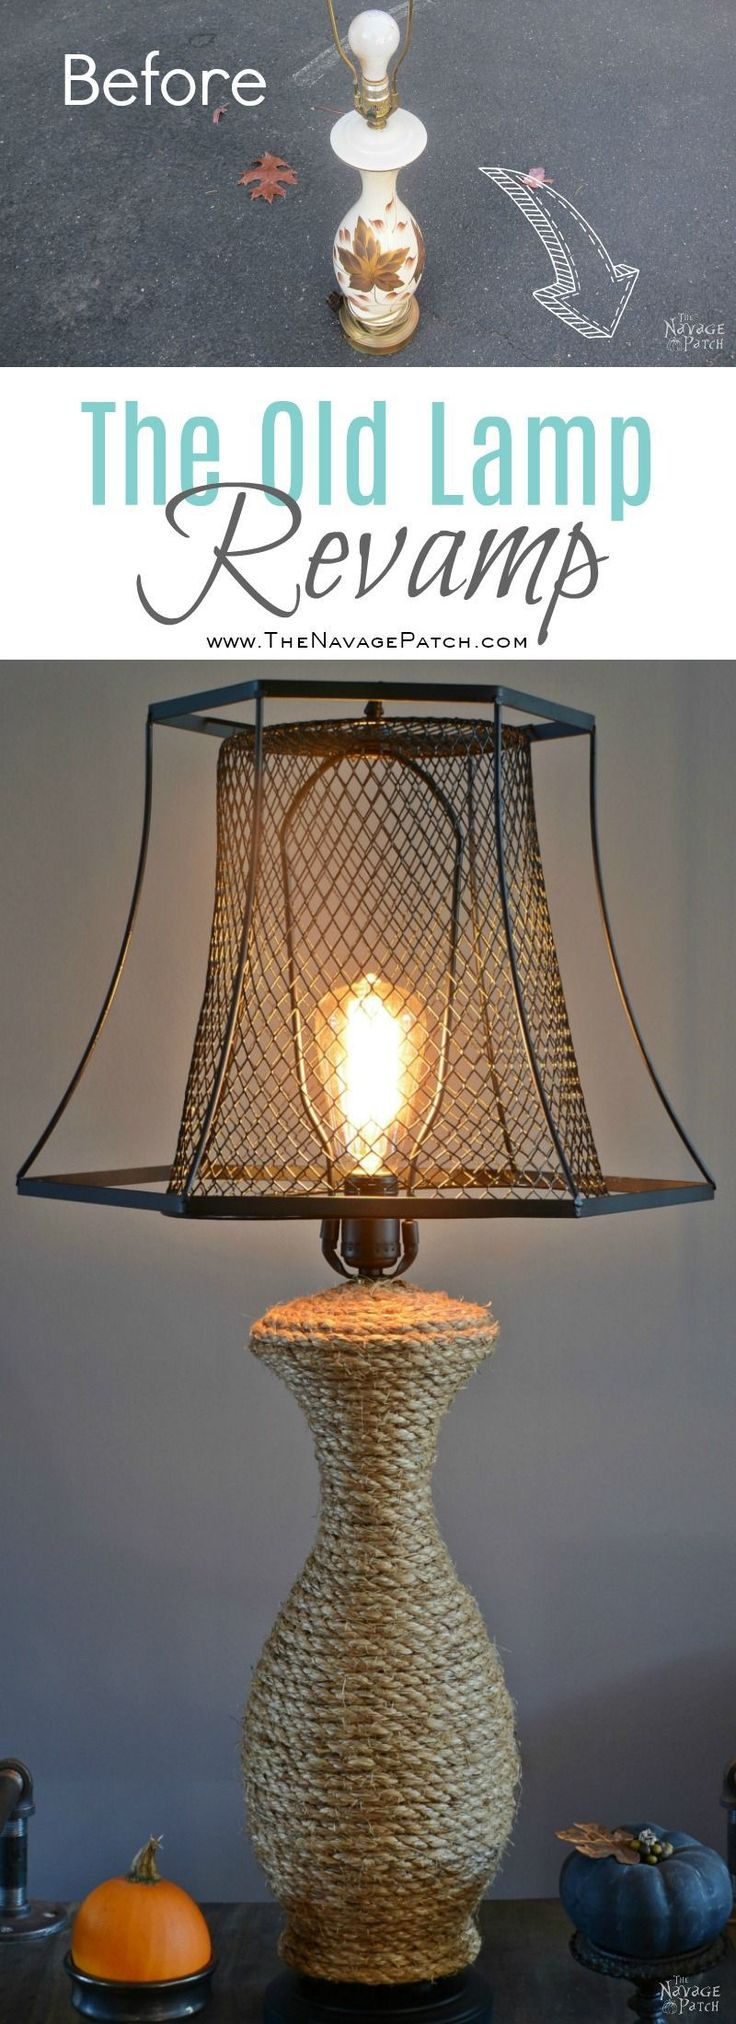 The Old Lamp Revamp | Industrial style DIY lamp makeover using Dollar Store tras...